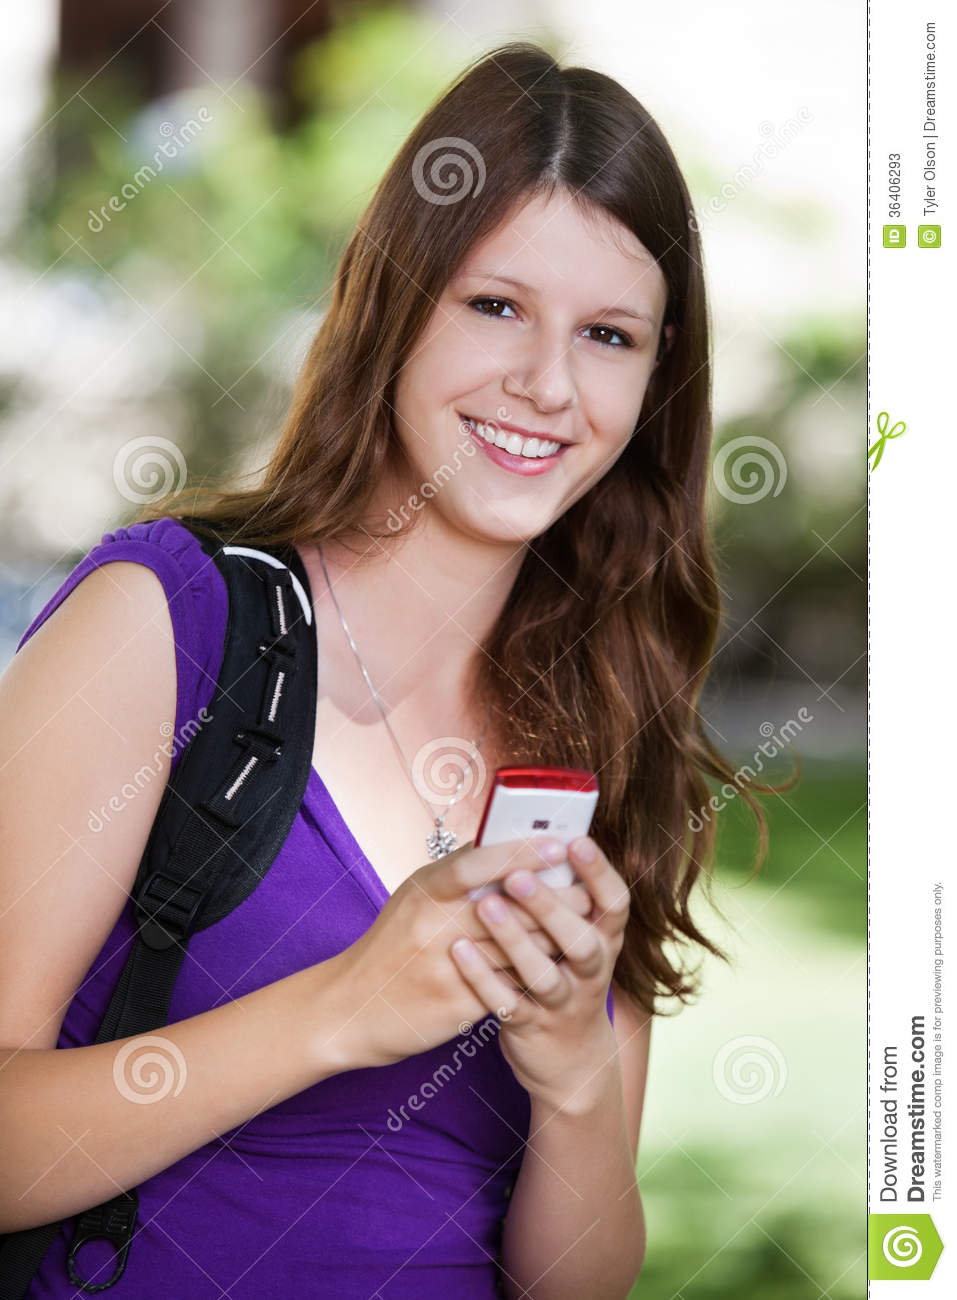 College Girl Holding Cell Phone Stock Photos Image 36406293